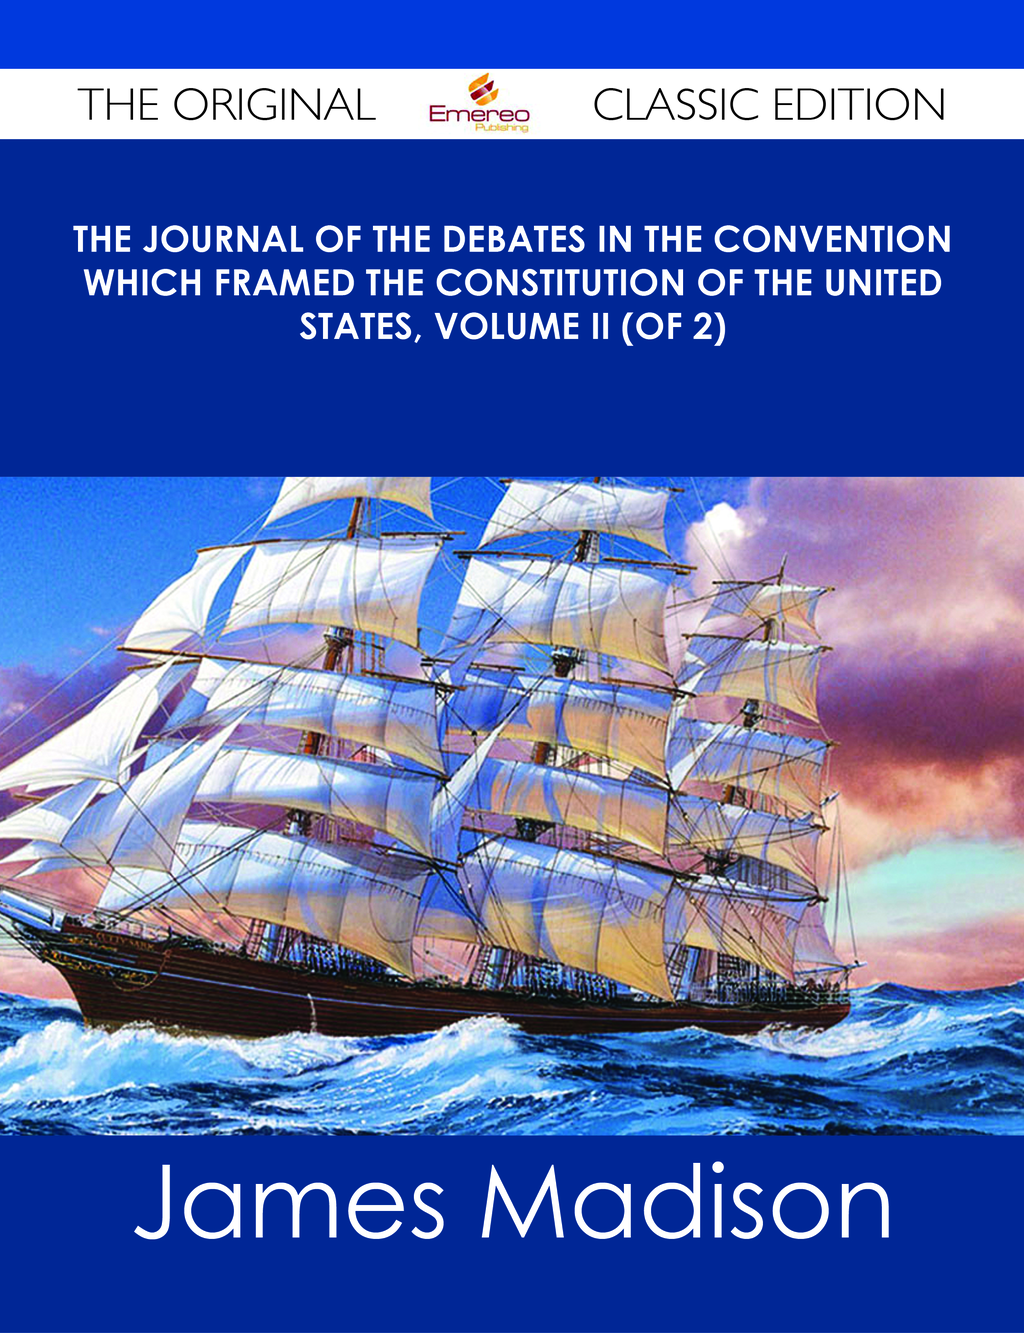 The Journal of the Debates in the Convention which framed the Constitution of the United States, Volume II (of 2) - The Original Classic Edition